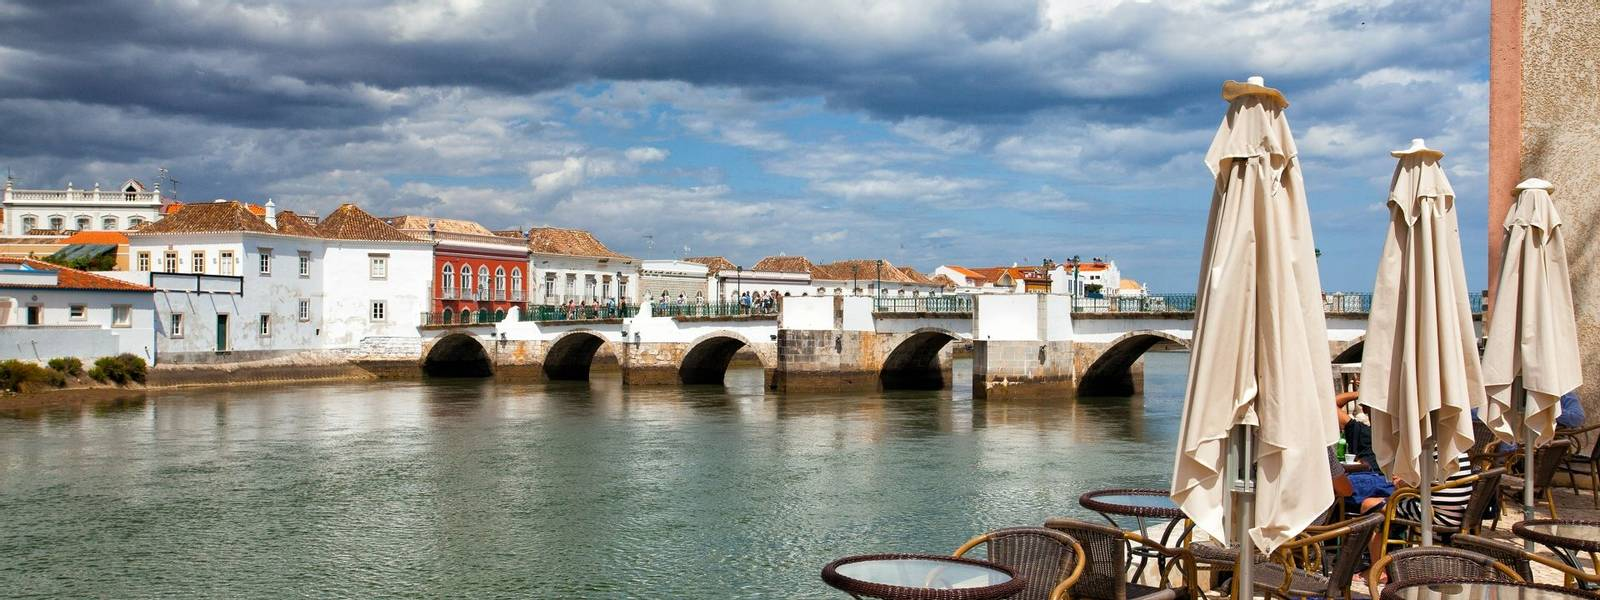 Historic architecture in Tavira city, Algarve,Portugal